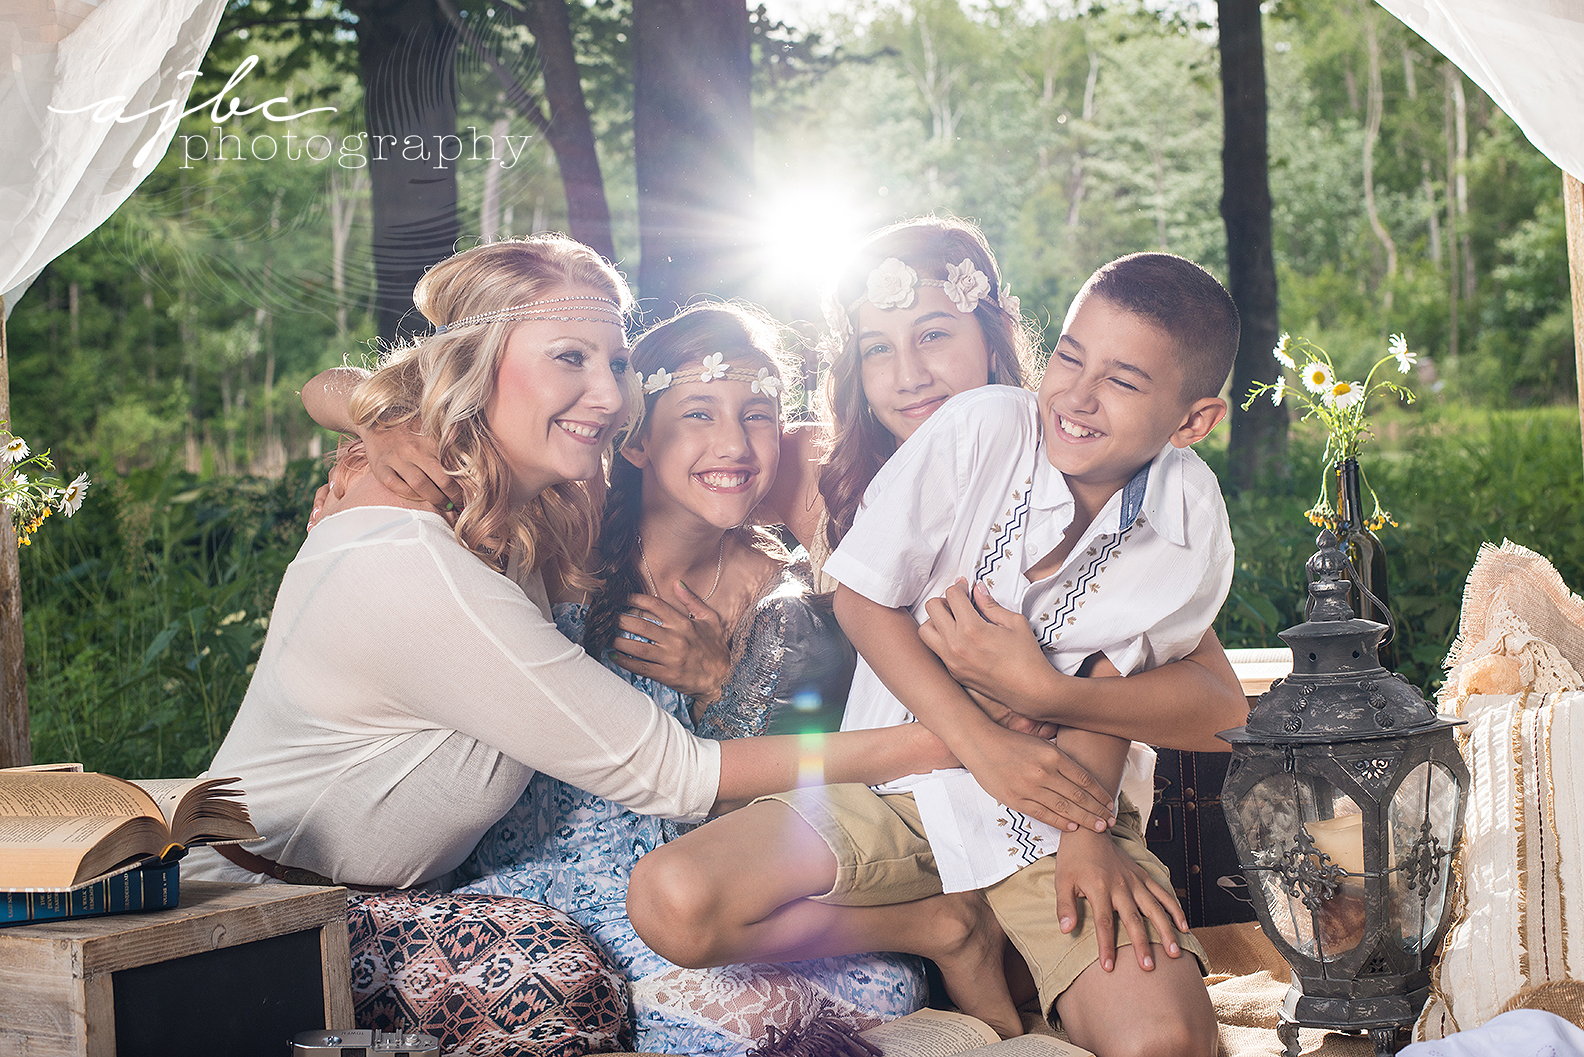 ajbcphotography-porthuron-michigan-family-photographer-outdoors-picnic-brother-sister-mother-portraits-child-photographer-family-fun.jpg